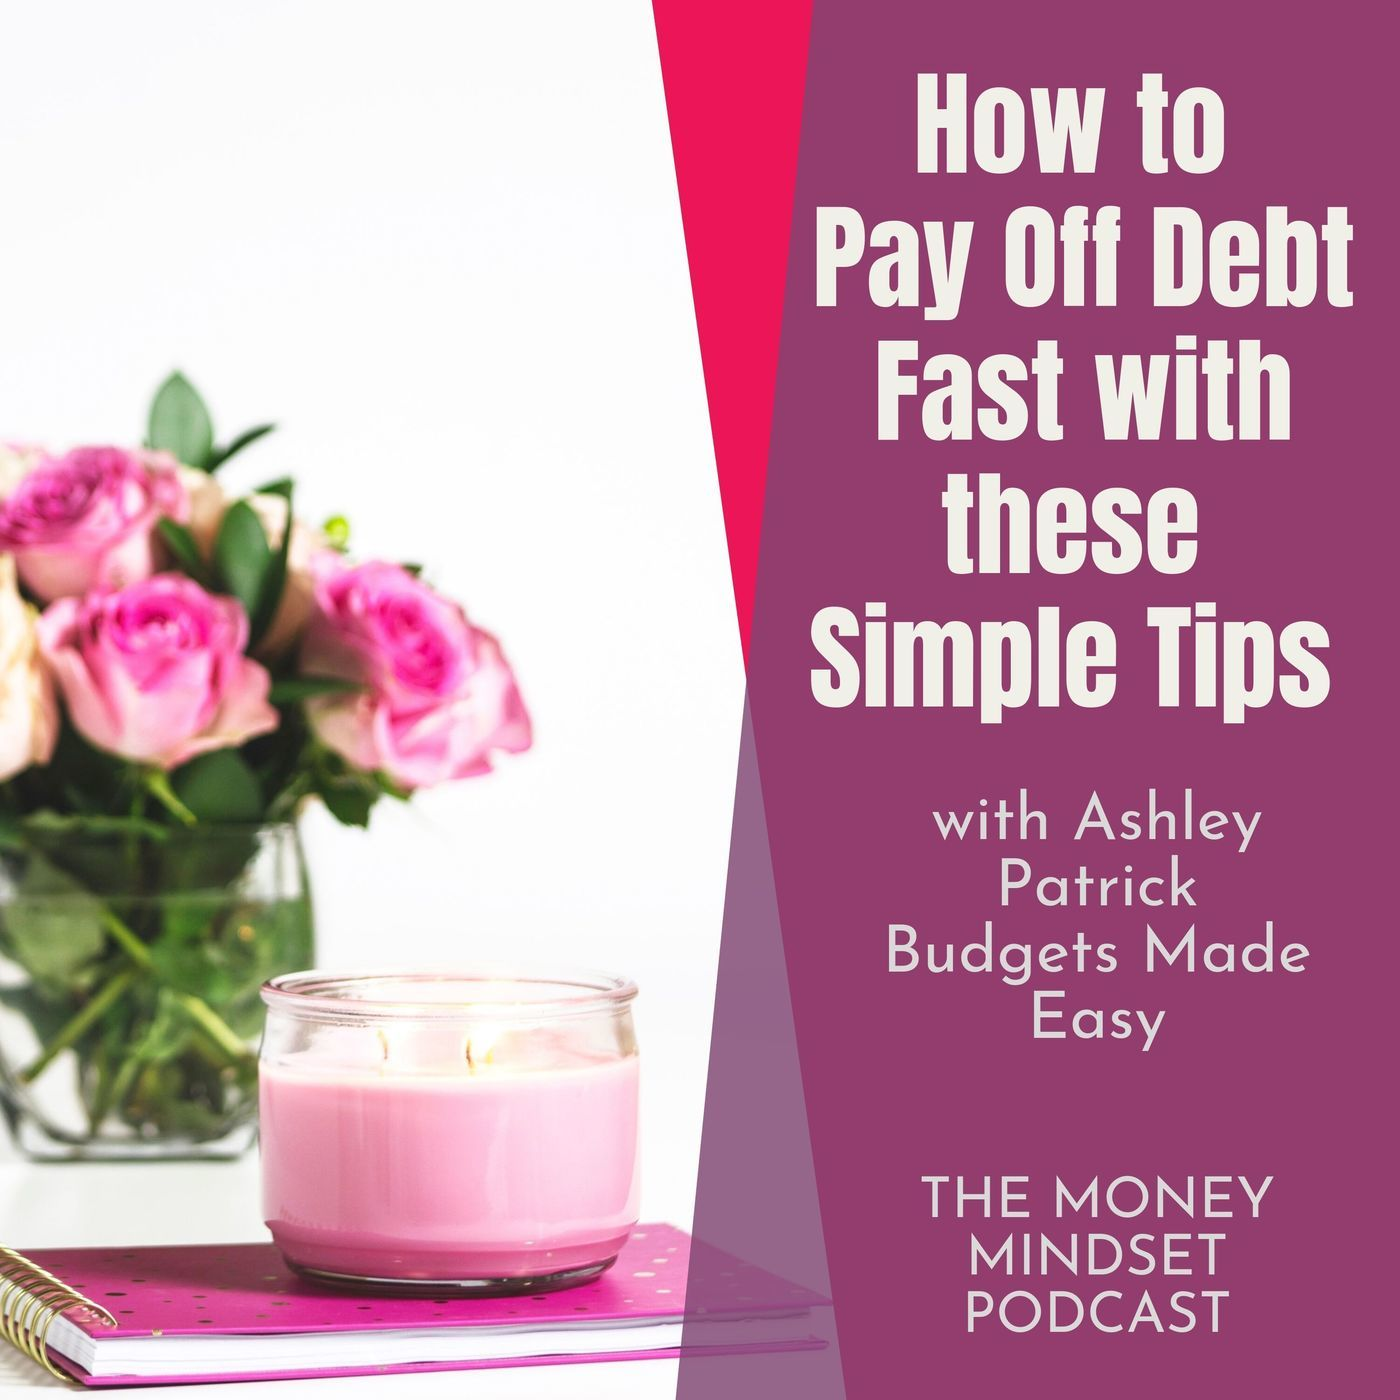 The Money Mindset Podcast payoffdebttips: #5 How To Pay Off Debt Fast Tips